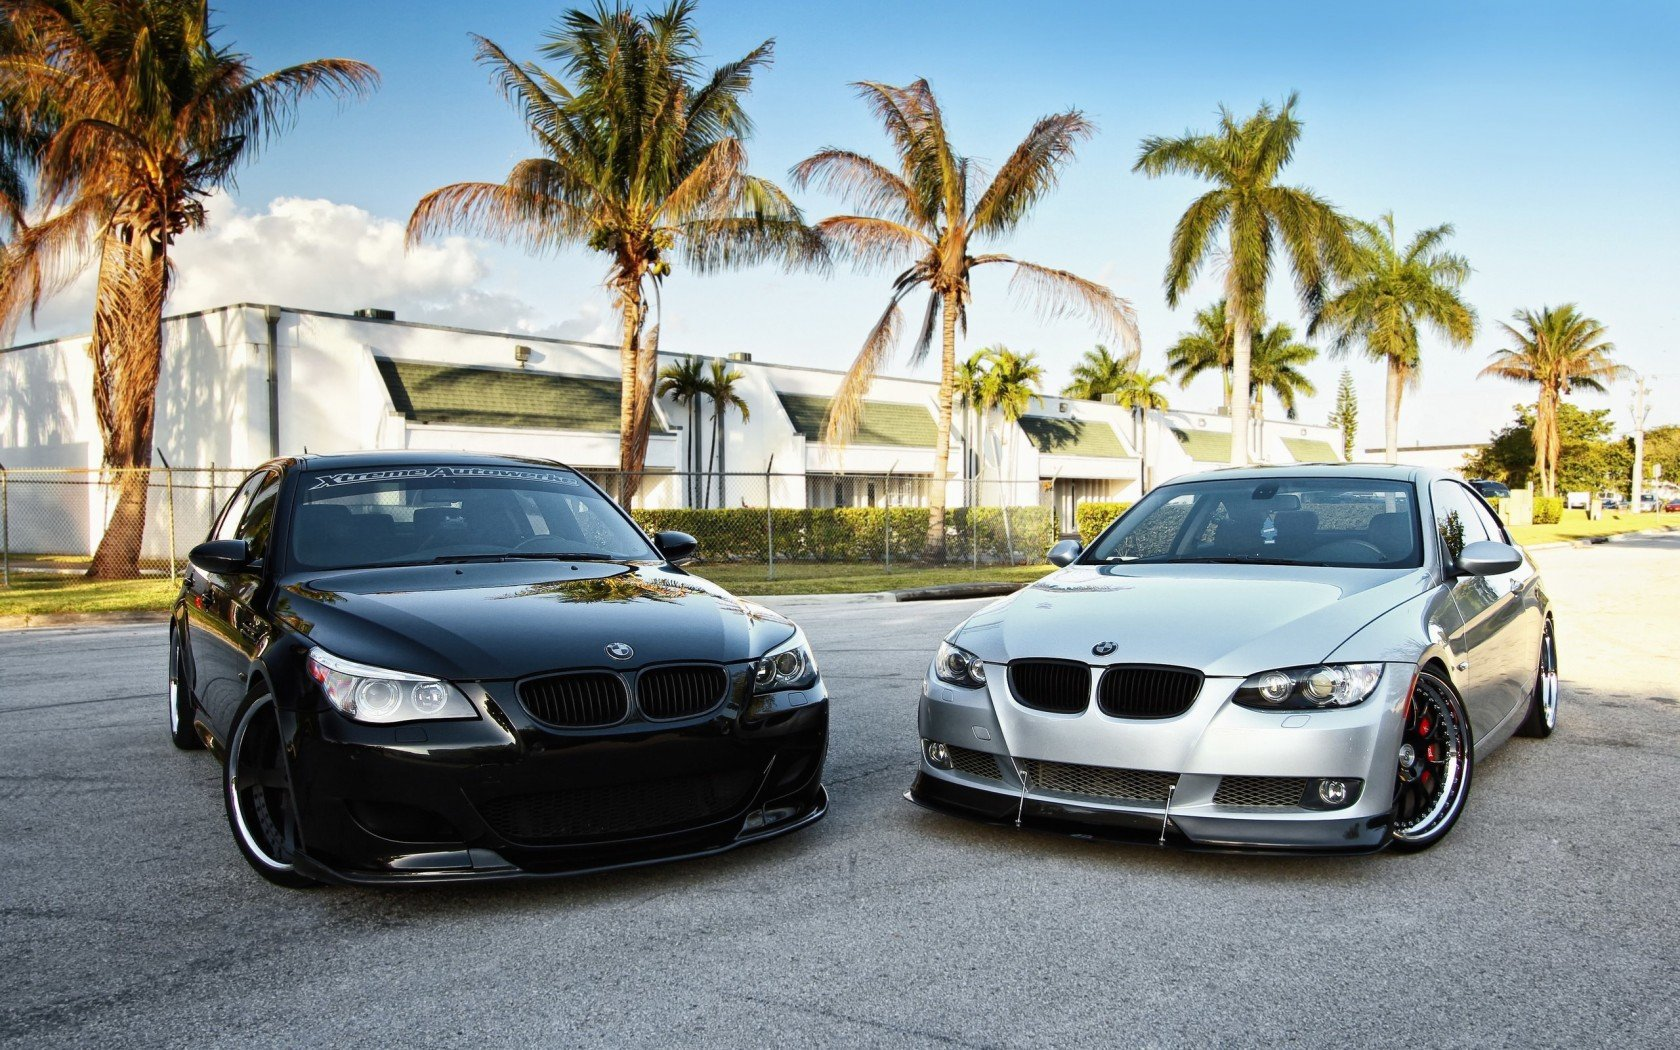 BMW M5 HD Wallpapers Images Backgrounds 1680x1050